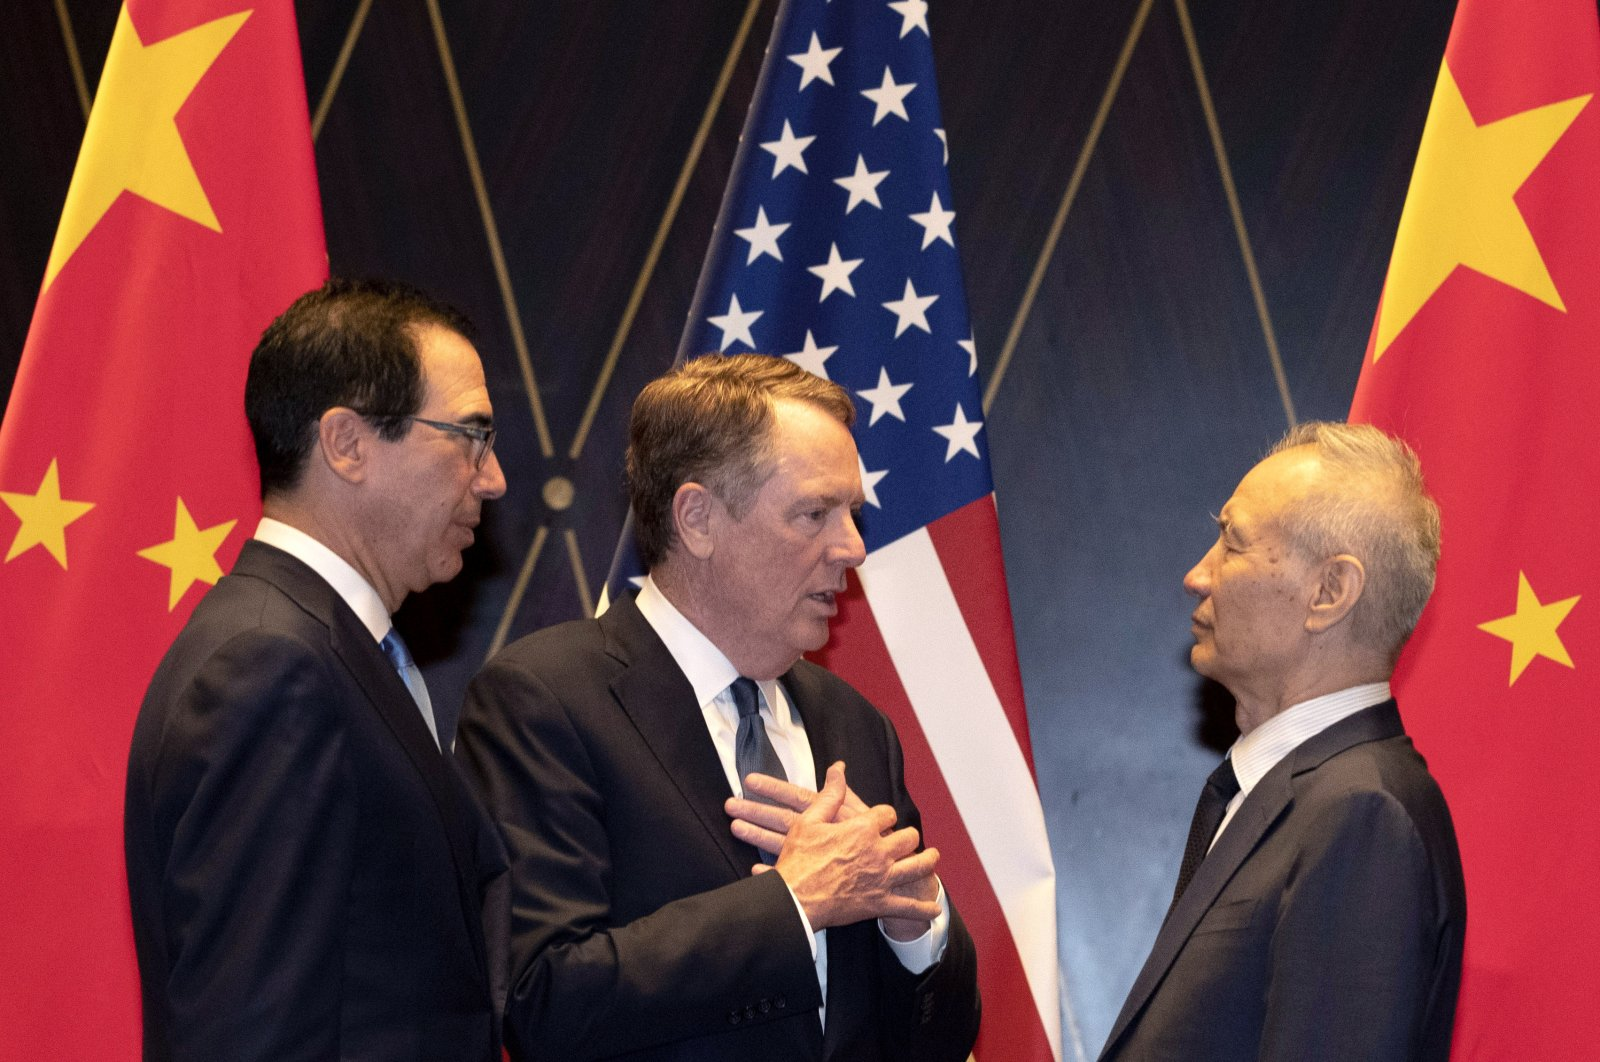 U.S. Trade Representative Robert Lighthizer (C), gestures as he chats with Chinese Vice Premier Liu He (R) with Treasury Secretary Steven Mnuchin (L), looking on after posing for a family photo at the Xijiao Conference Center in Shanghai, July 31, 2019. (AP Photo)